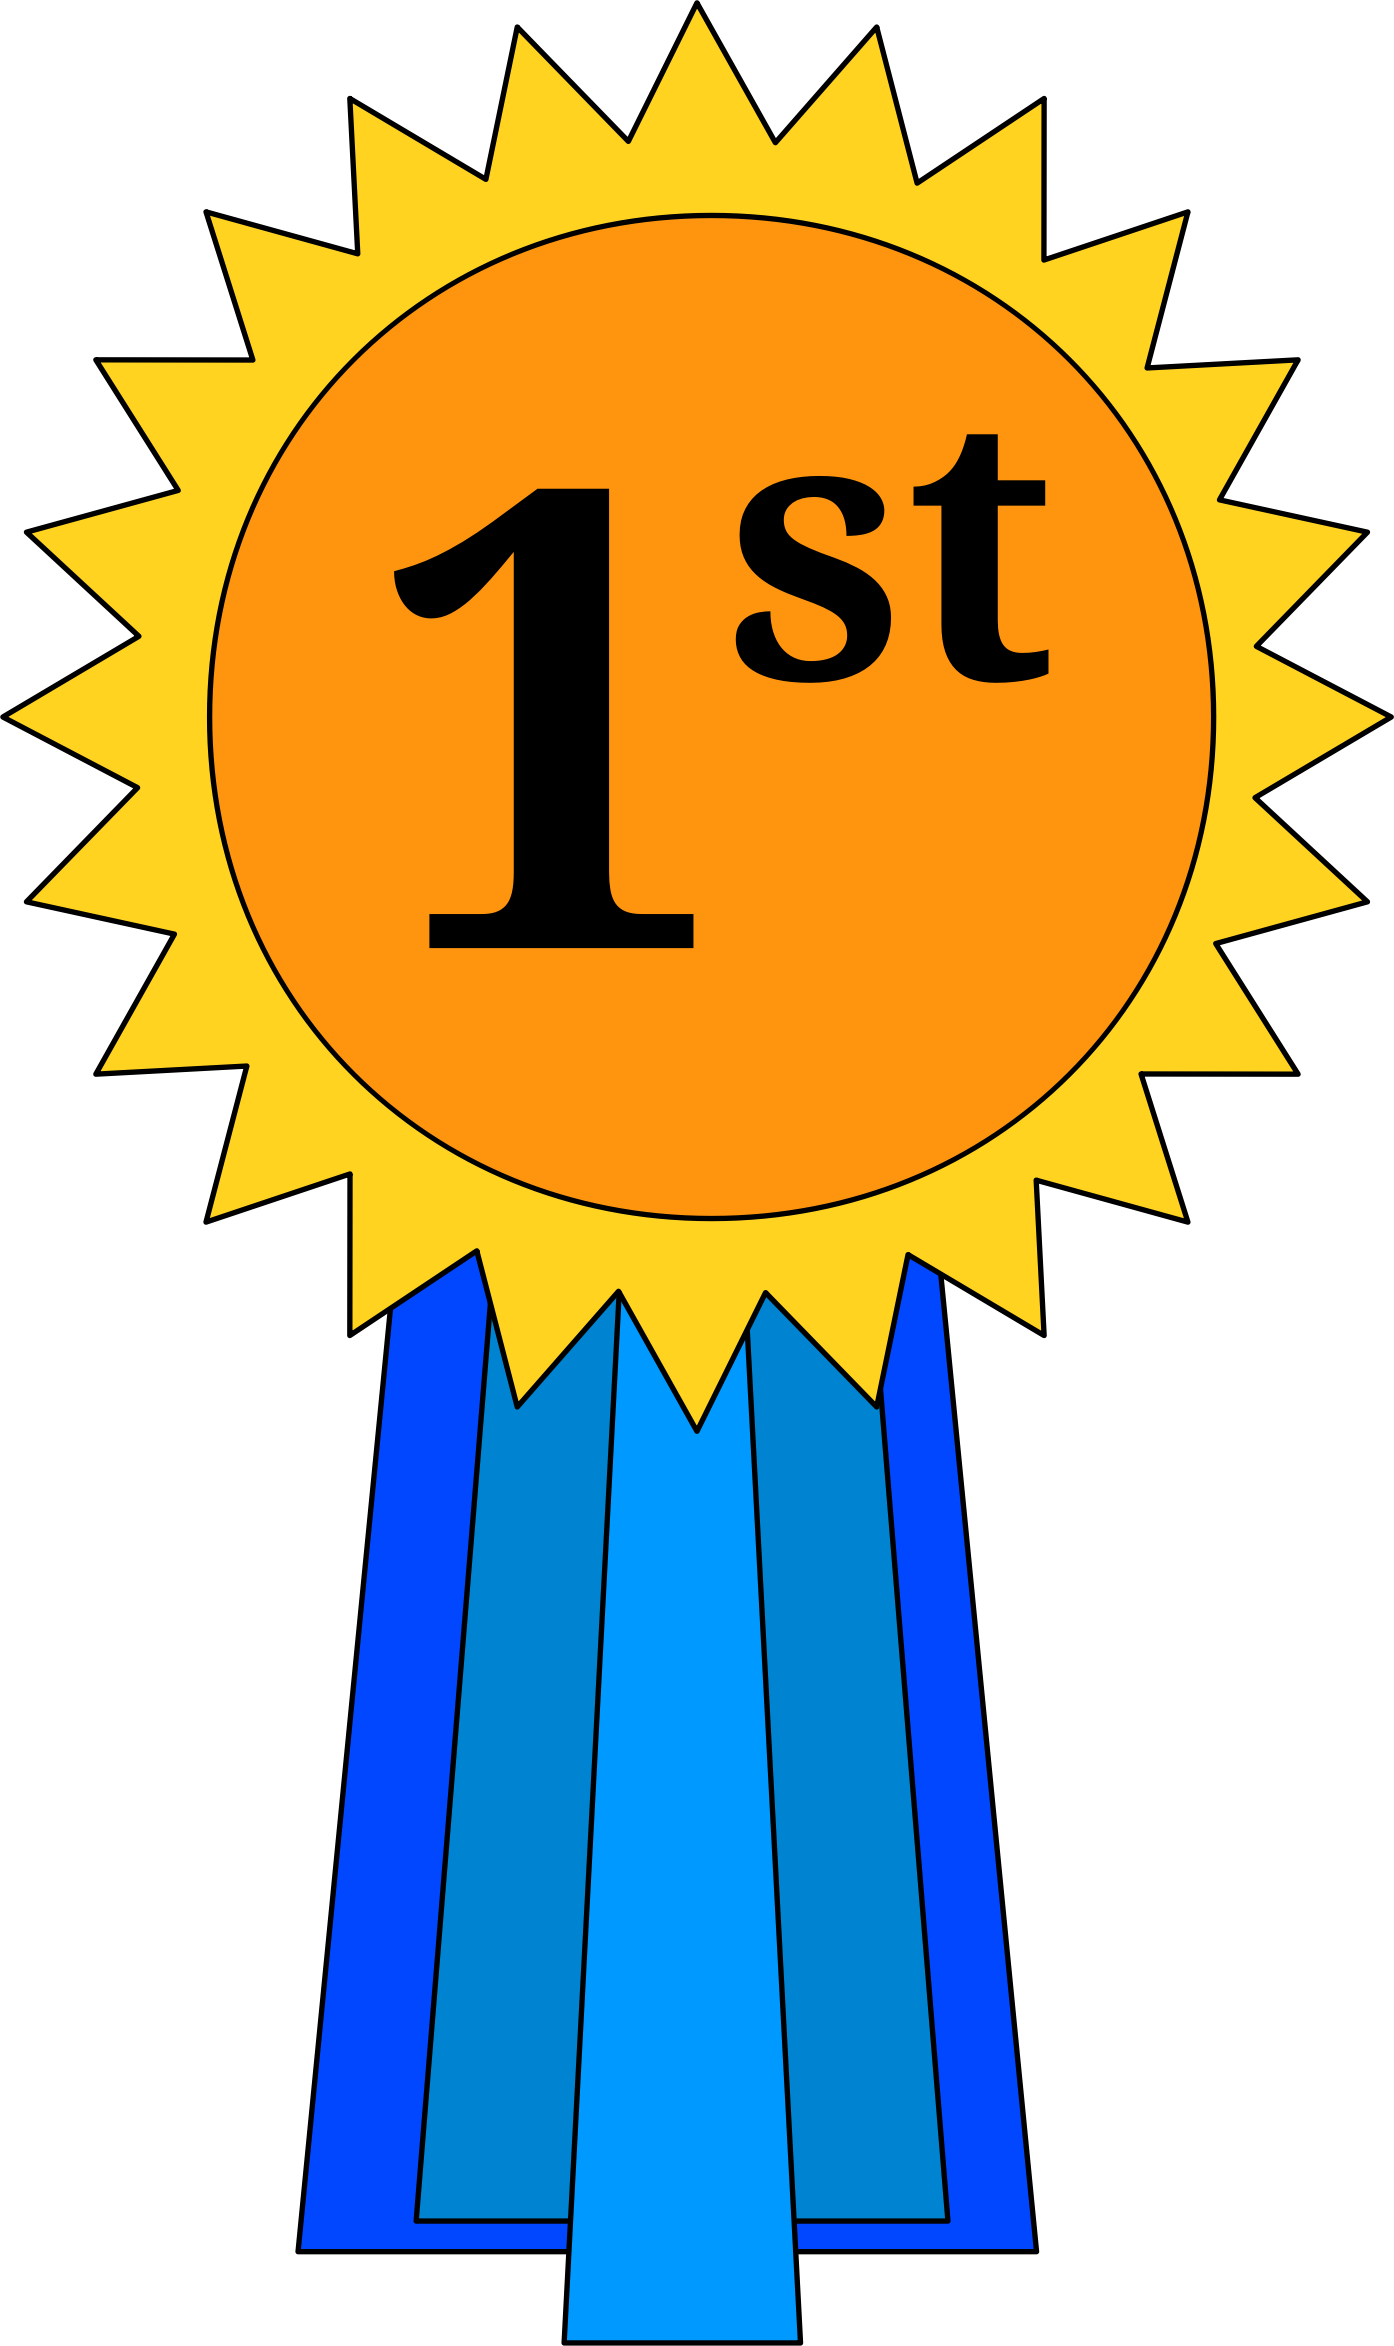 1st Place Ribbon With Images